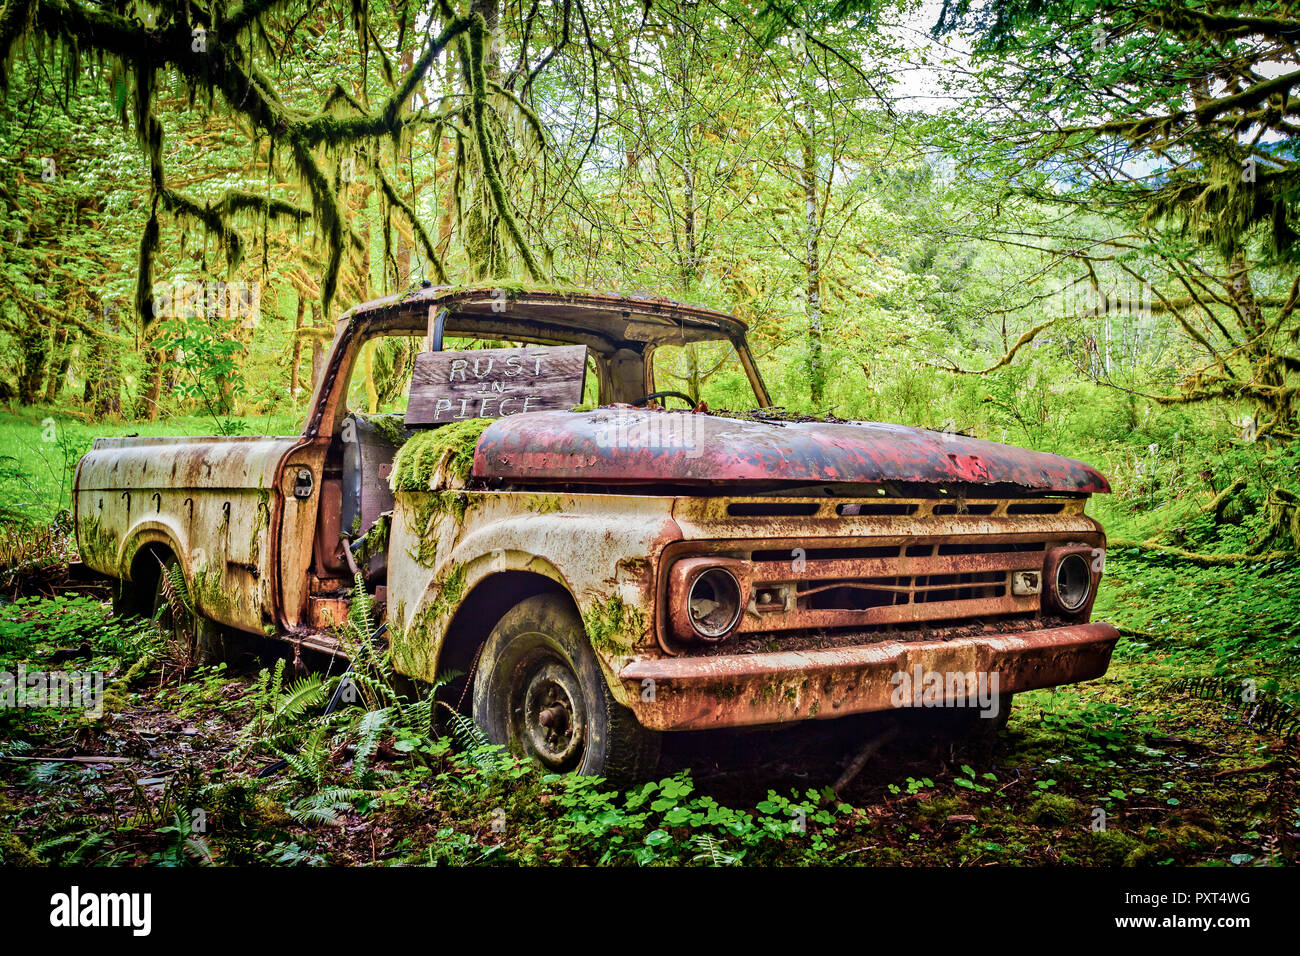 Abandoned Ford pickup truck from 1963 decaying in the middle of a rainforest, Washington, USA - Stock Image